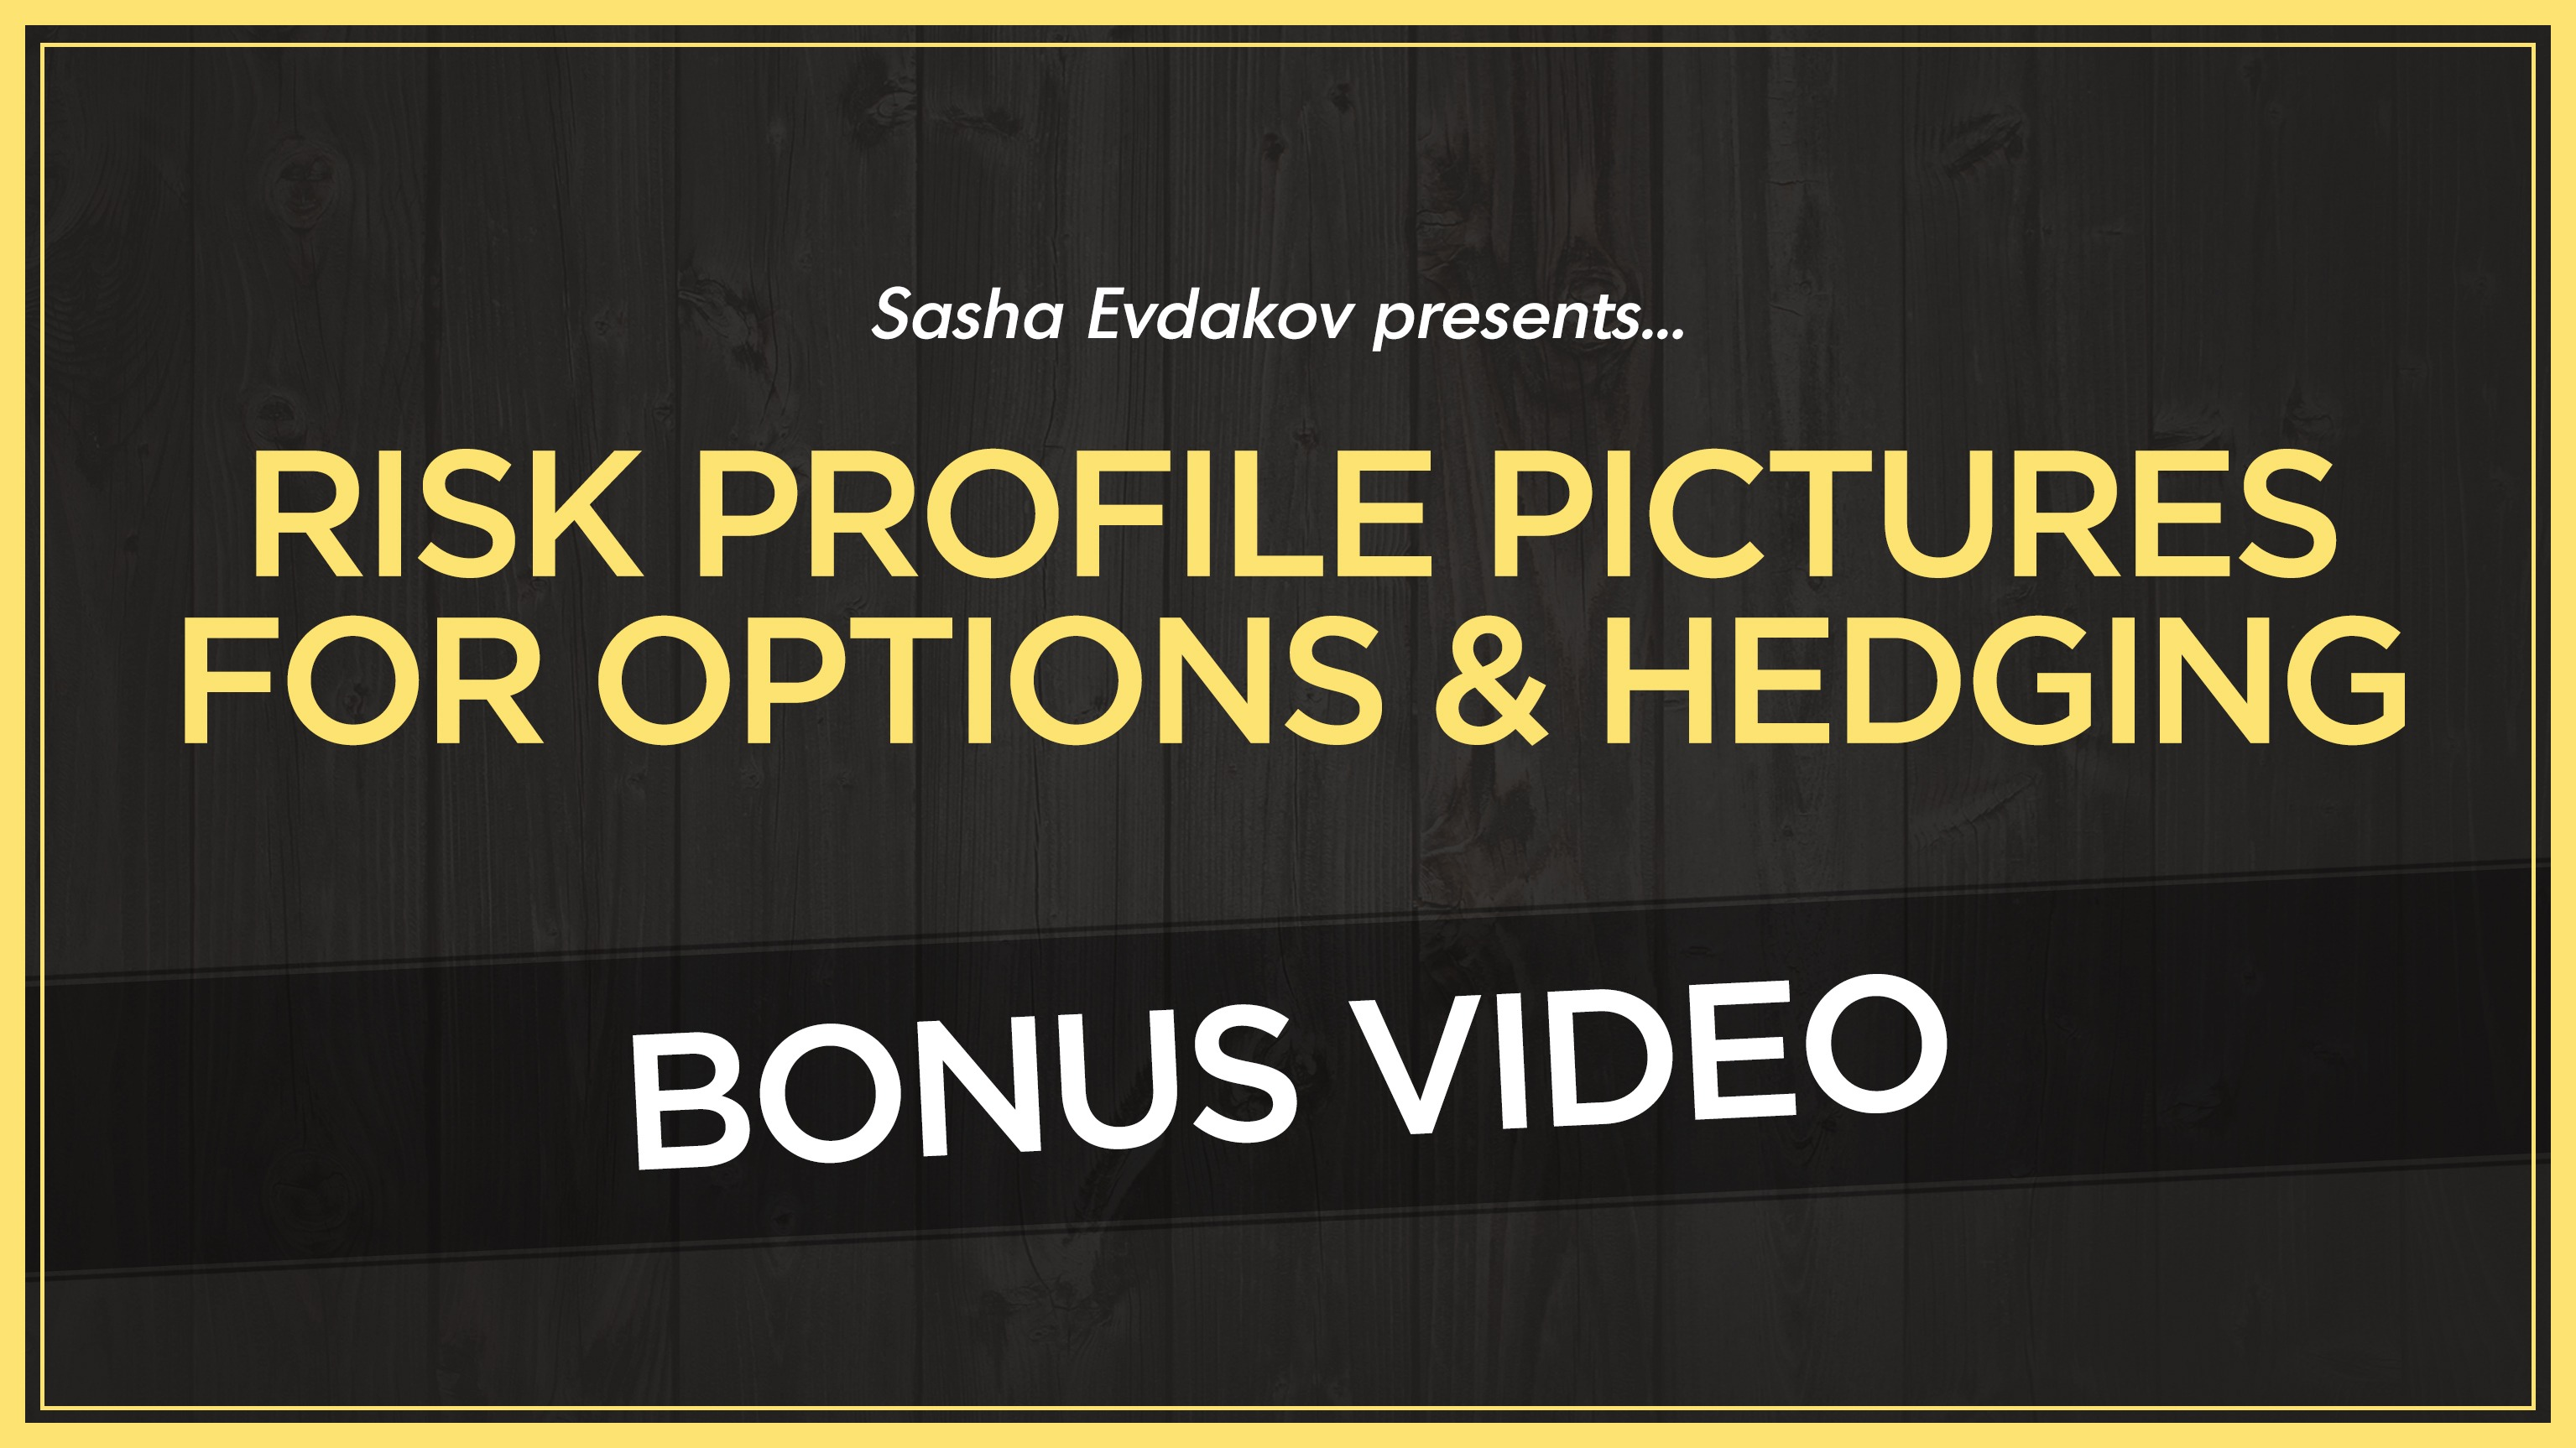 Bonus Video Risk Profile Picture for Options & Hedging Thumbnail